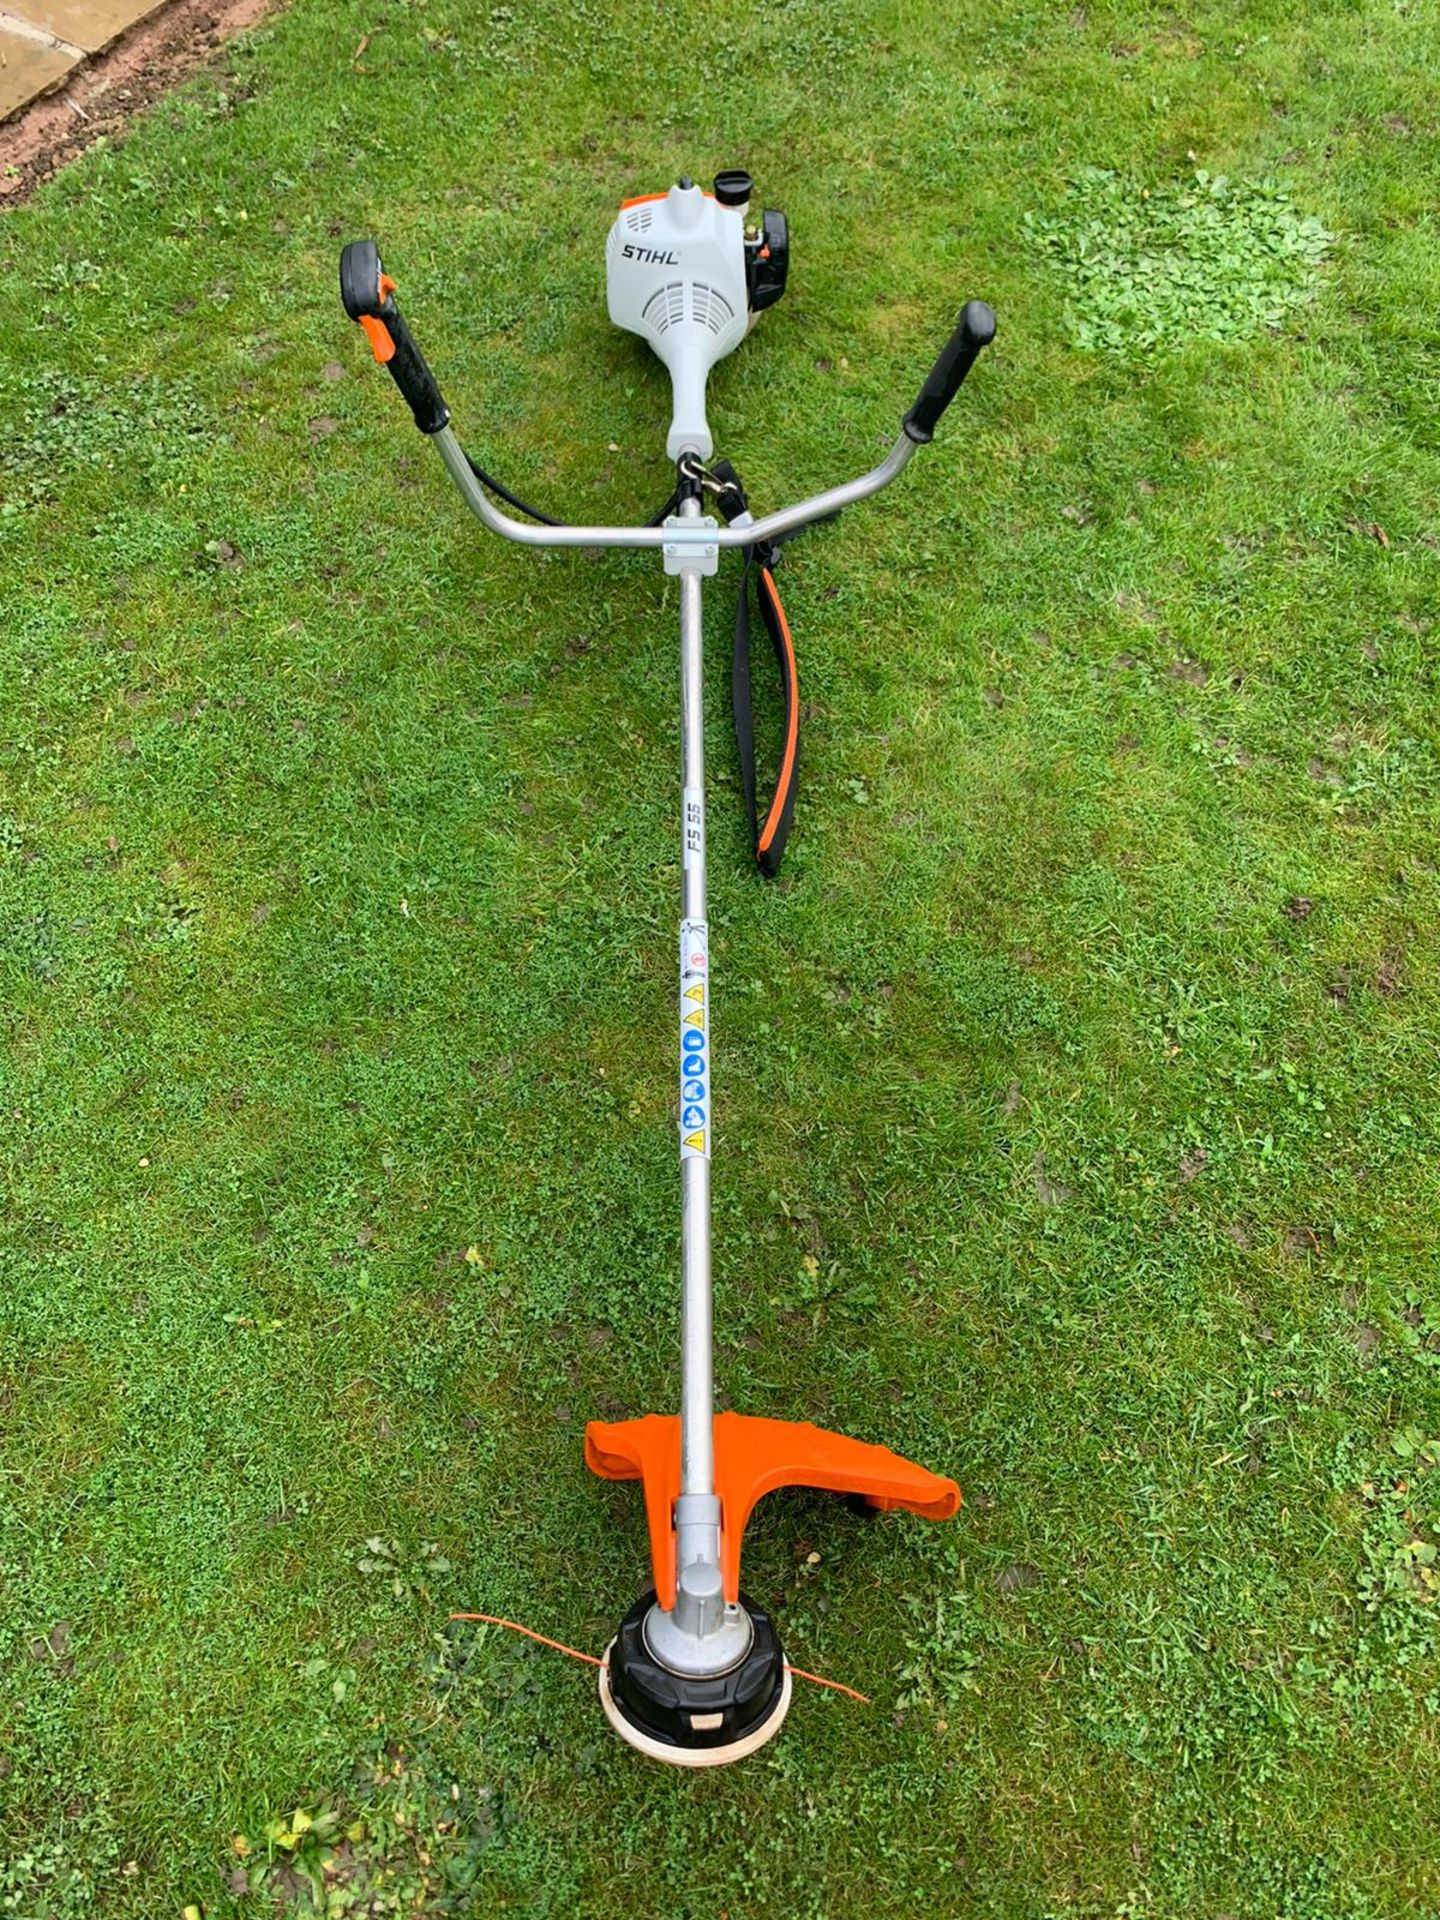 Brand New And Unused, Stihl FS55 Strimmer With Bike Handle, C/W Manual *NO VAT* - Image 4 of 4